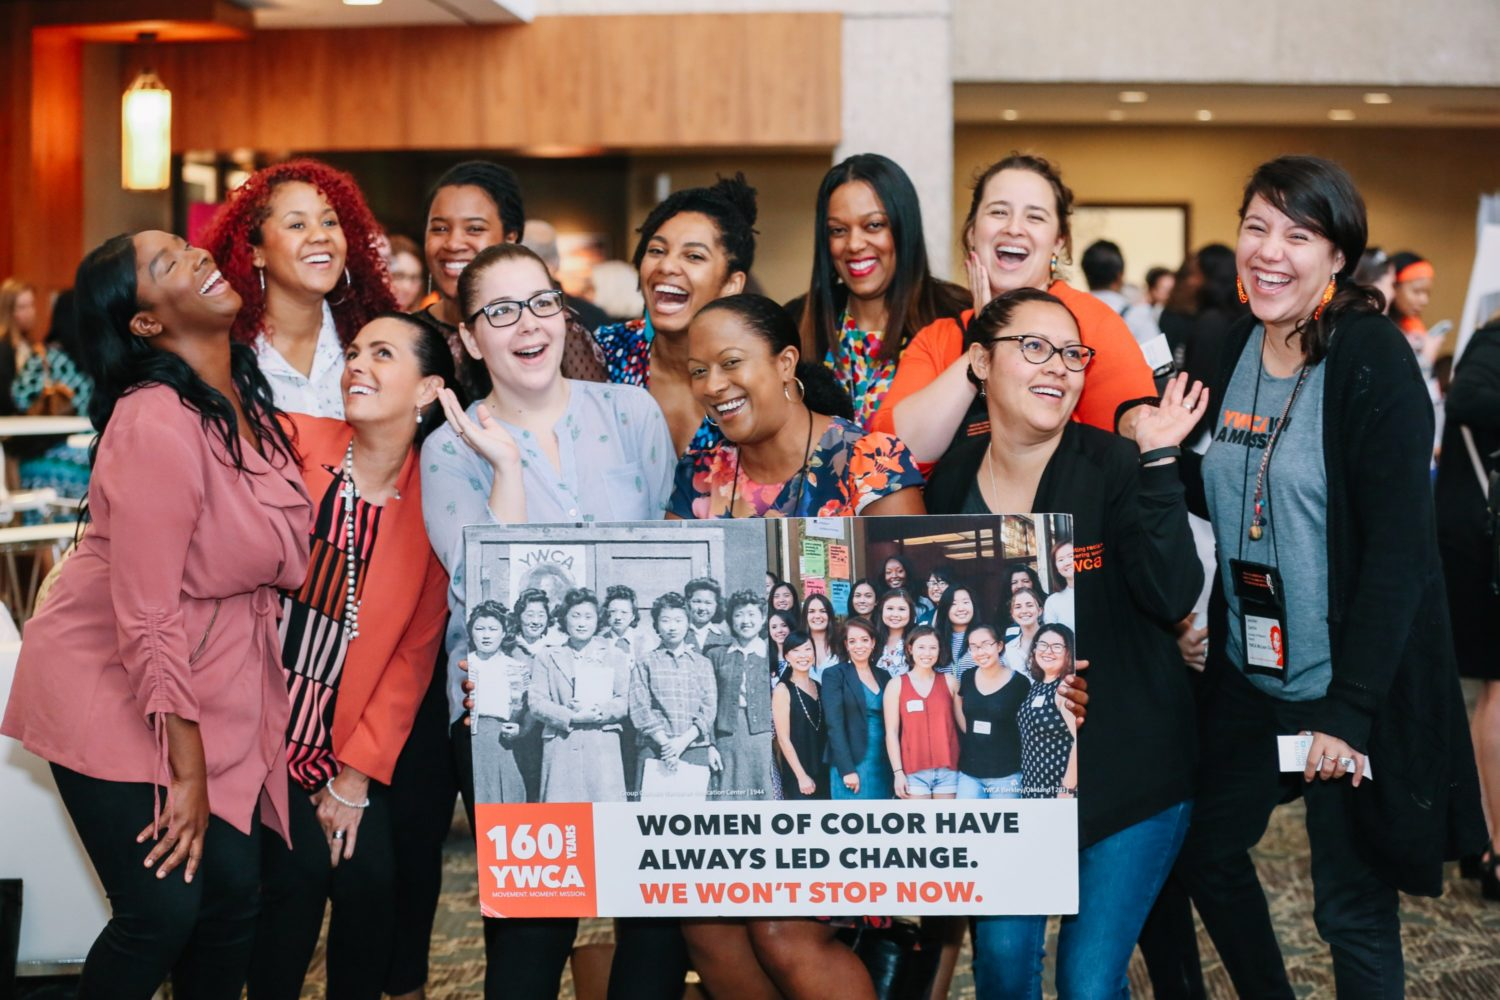 YWCA's Key to Success? Invest in Women